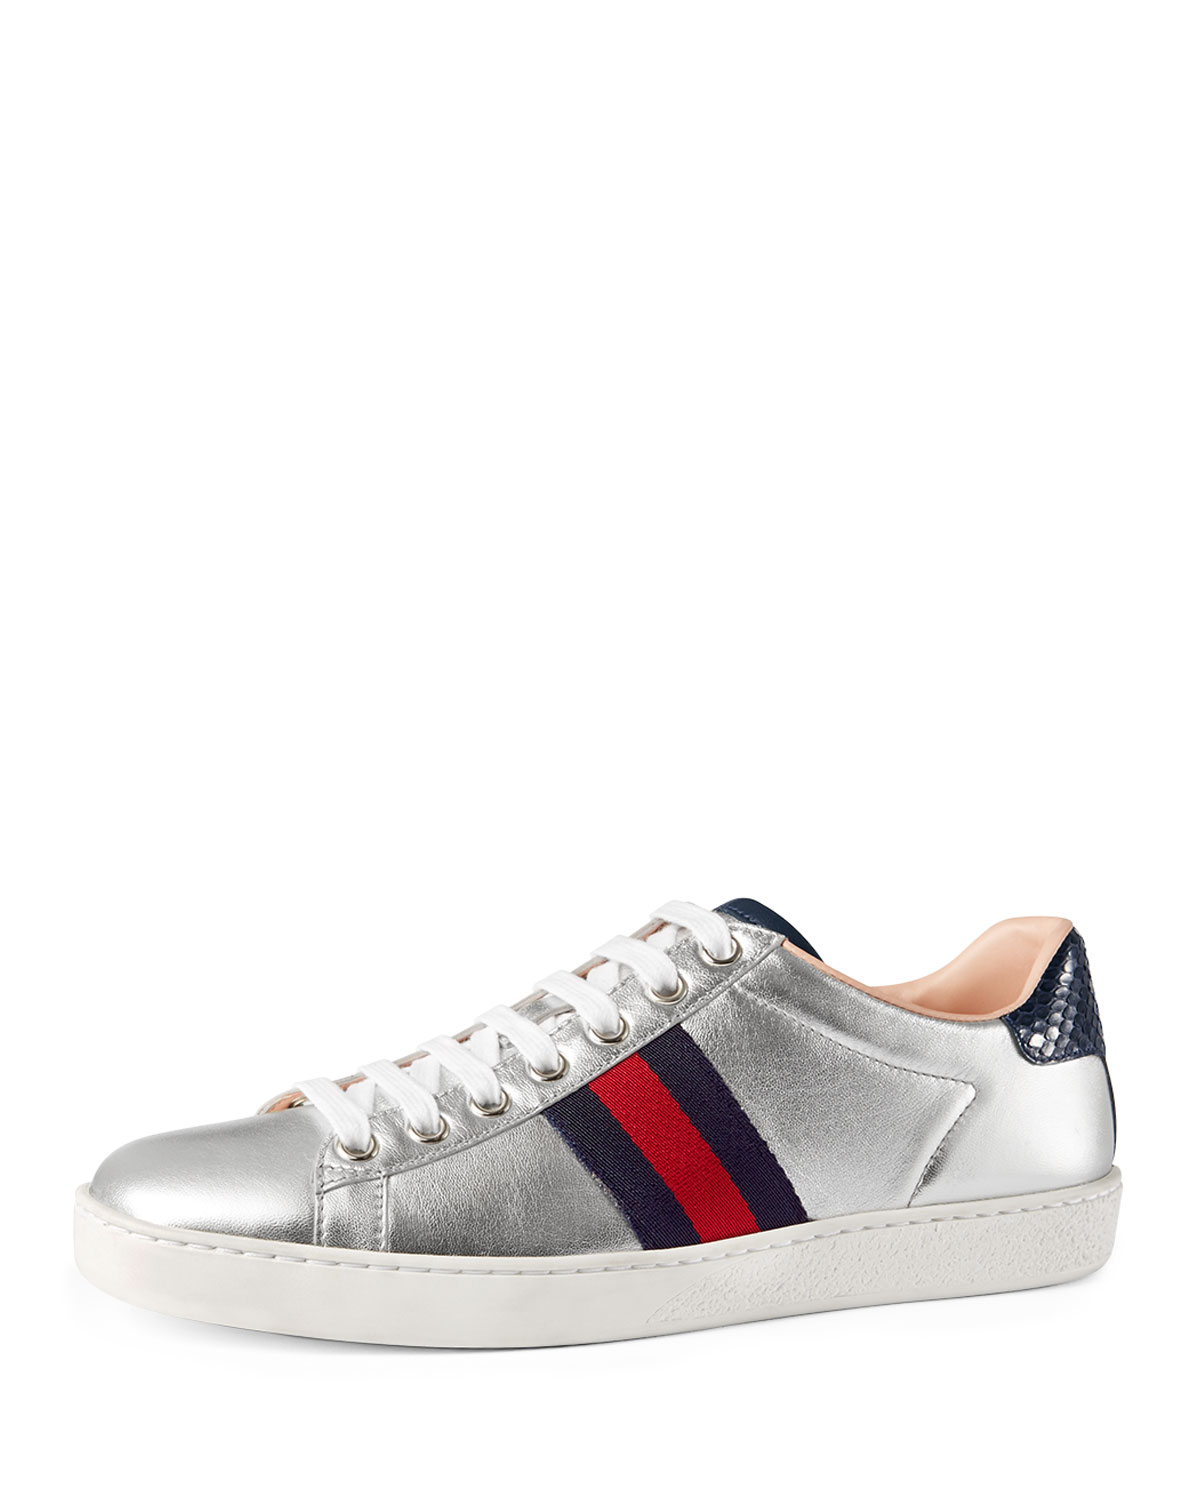 40b033cd18a2 Gucci New Ace Leather Low-Top Sneakers